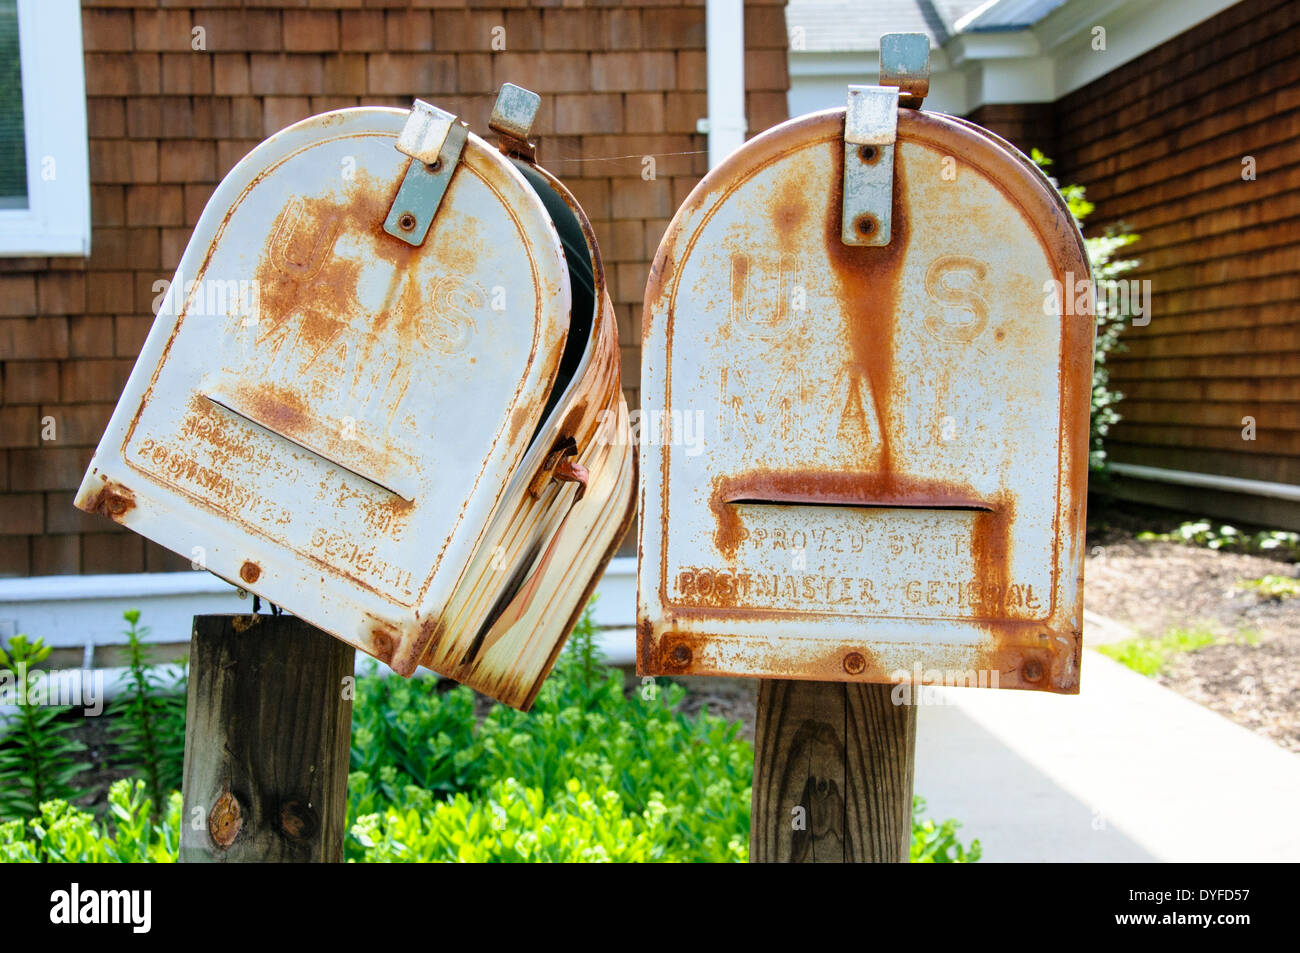 Old metal letter boxes. - Stock Image